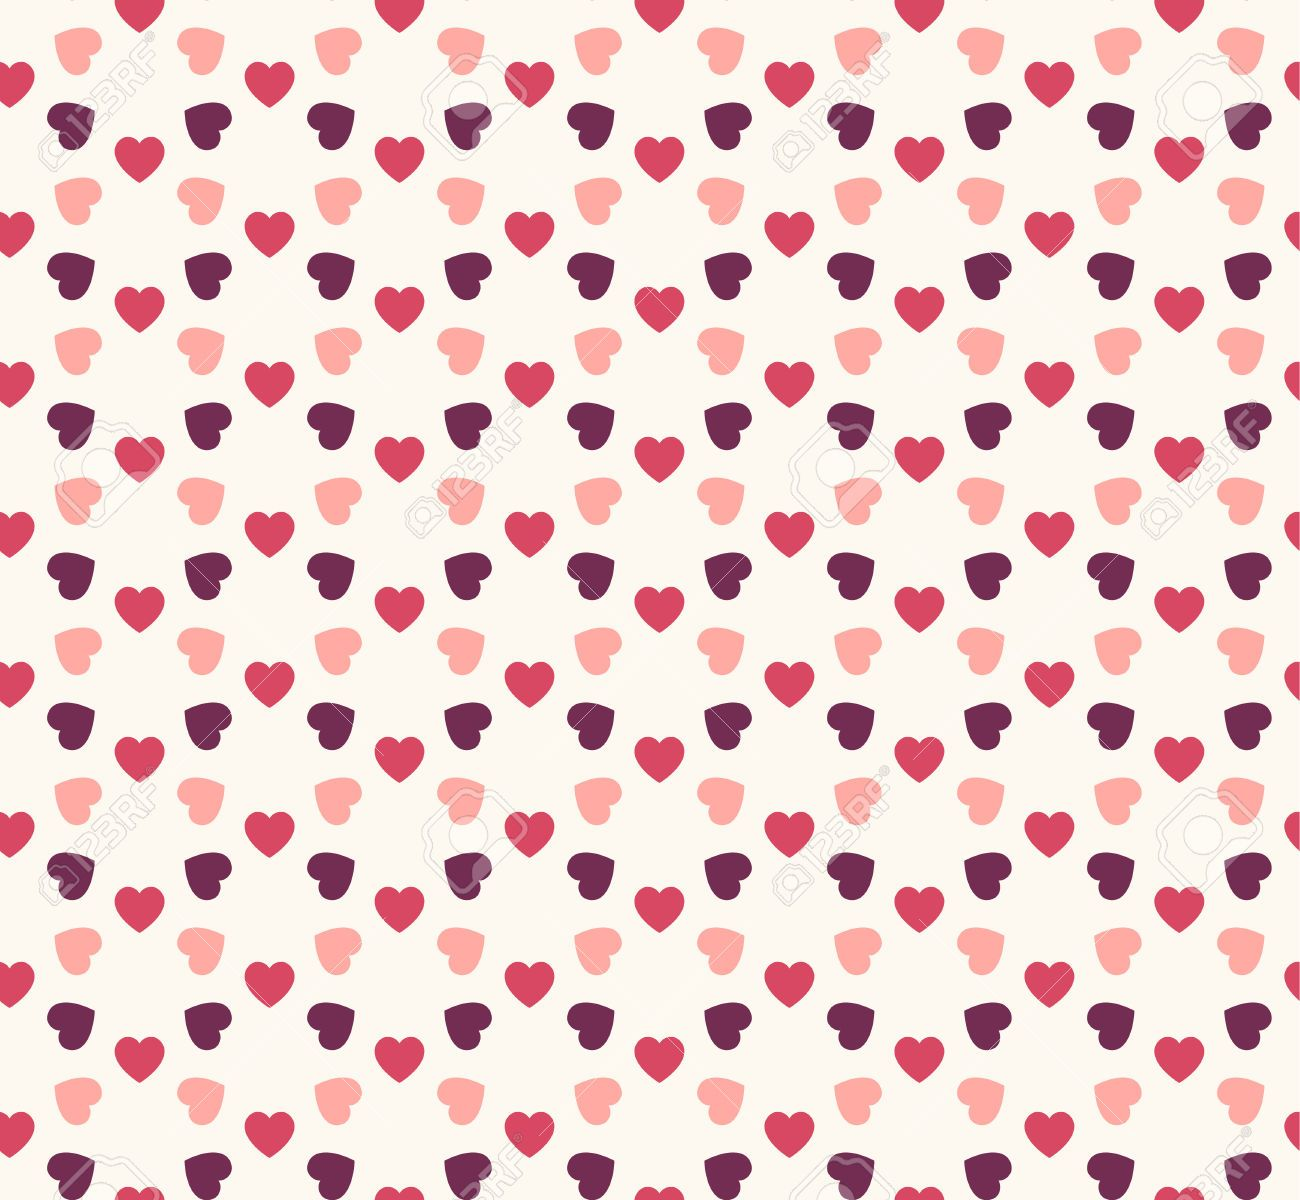 Seamless Geometric Hearts Pattern Can Be Used For Wallpaper